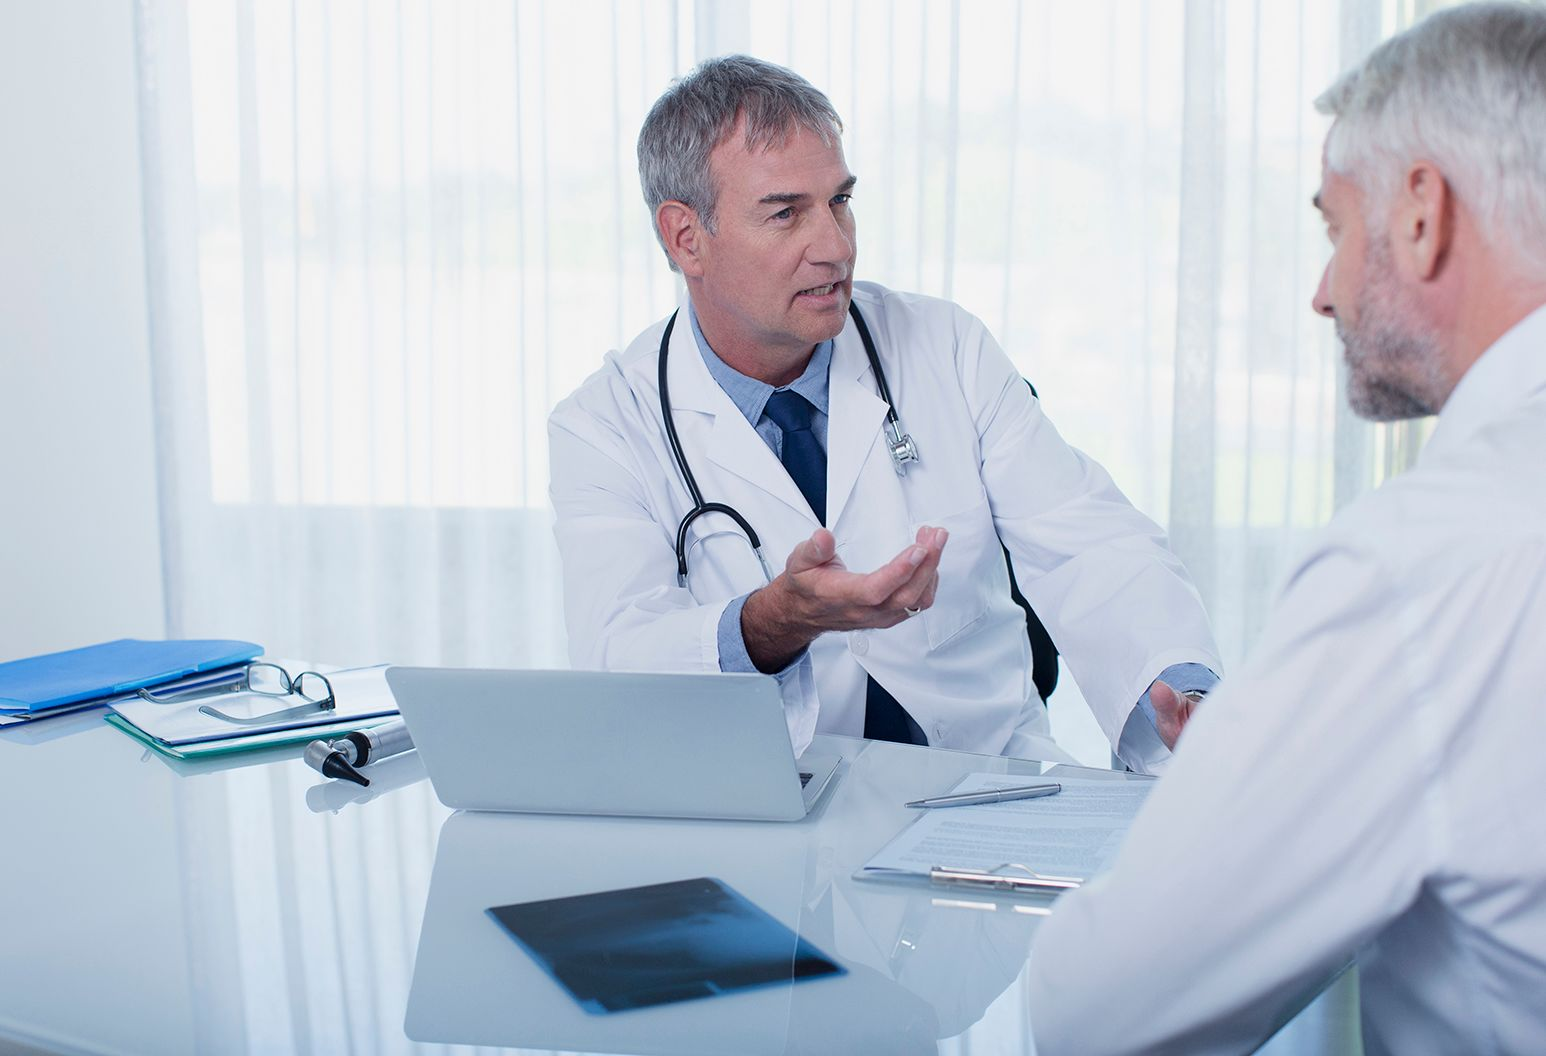 Male doctor wearing white lab coat sits at his desk while talking to a patient